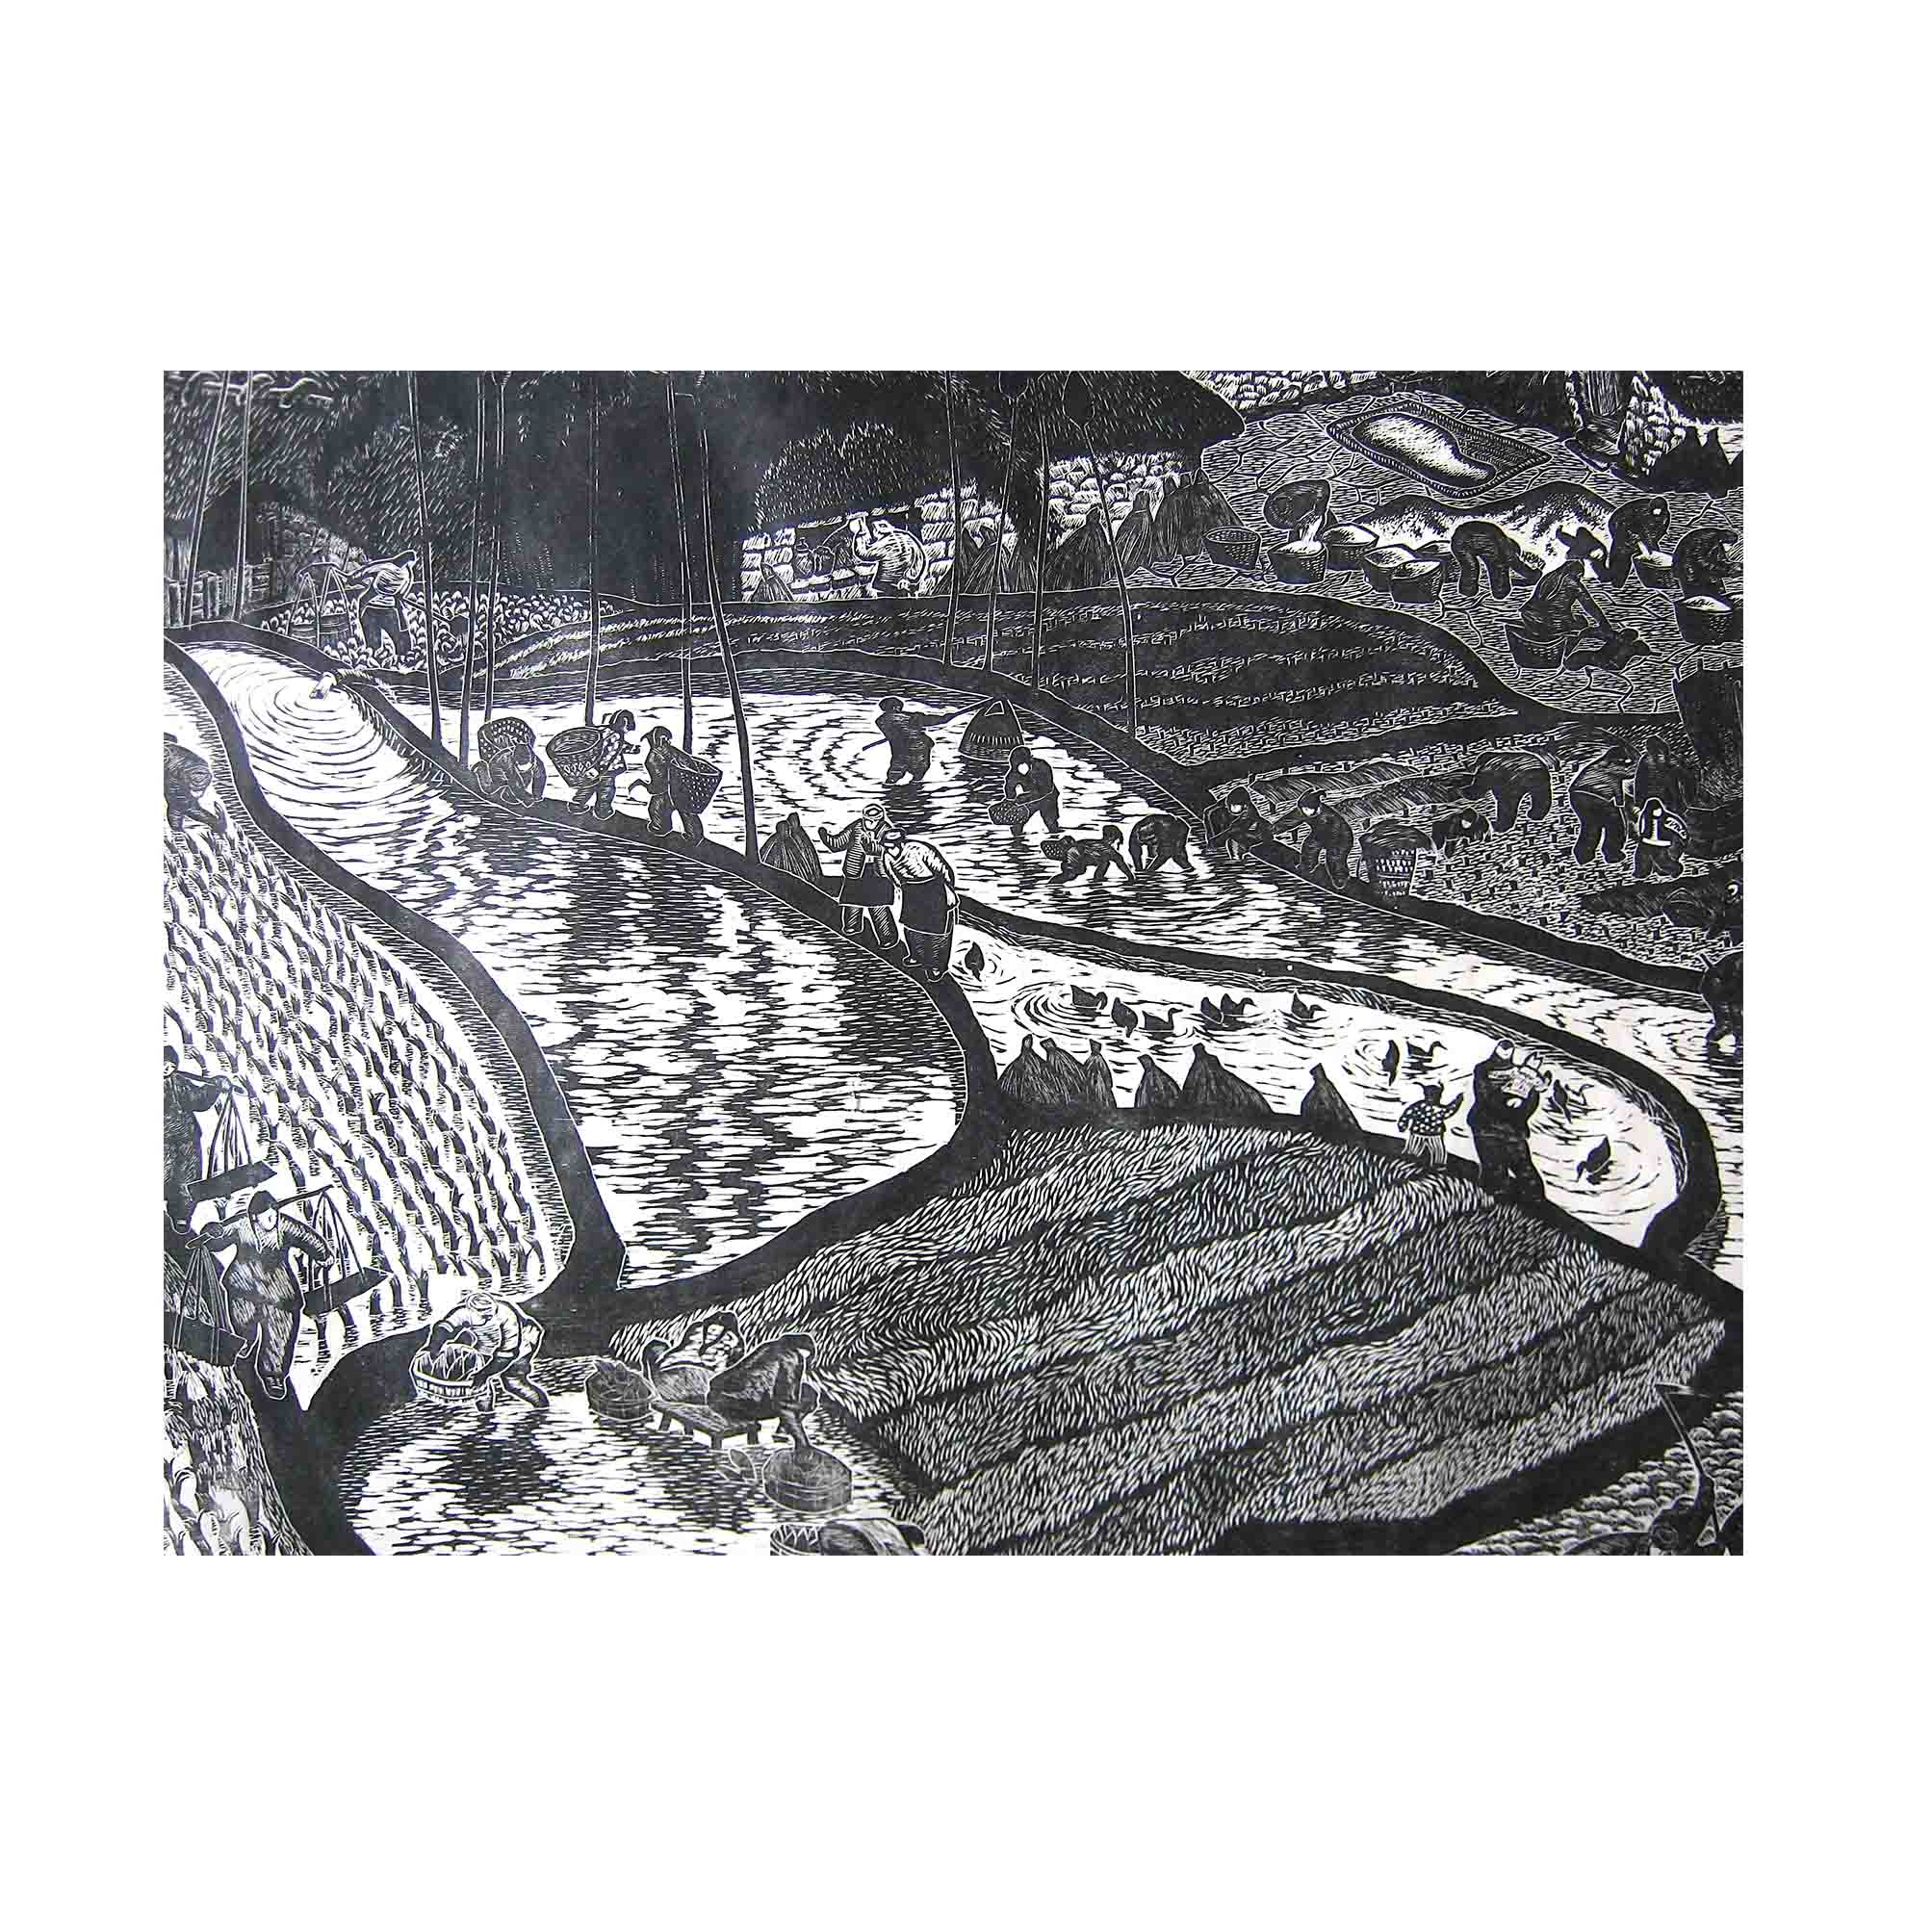 5538-Chinese-Rice-Fields-woodblock-A-N.jpg